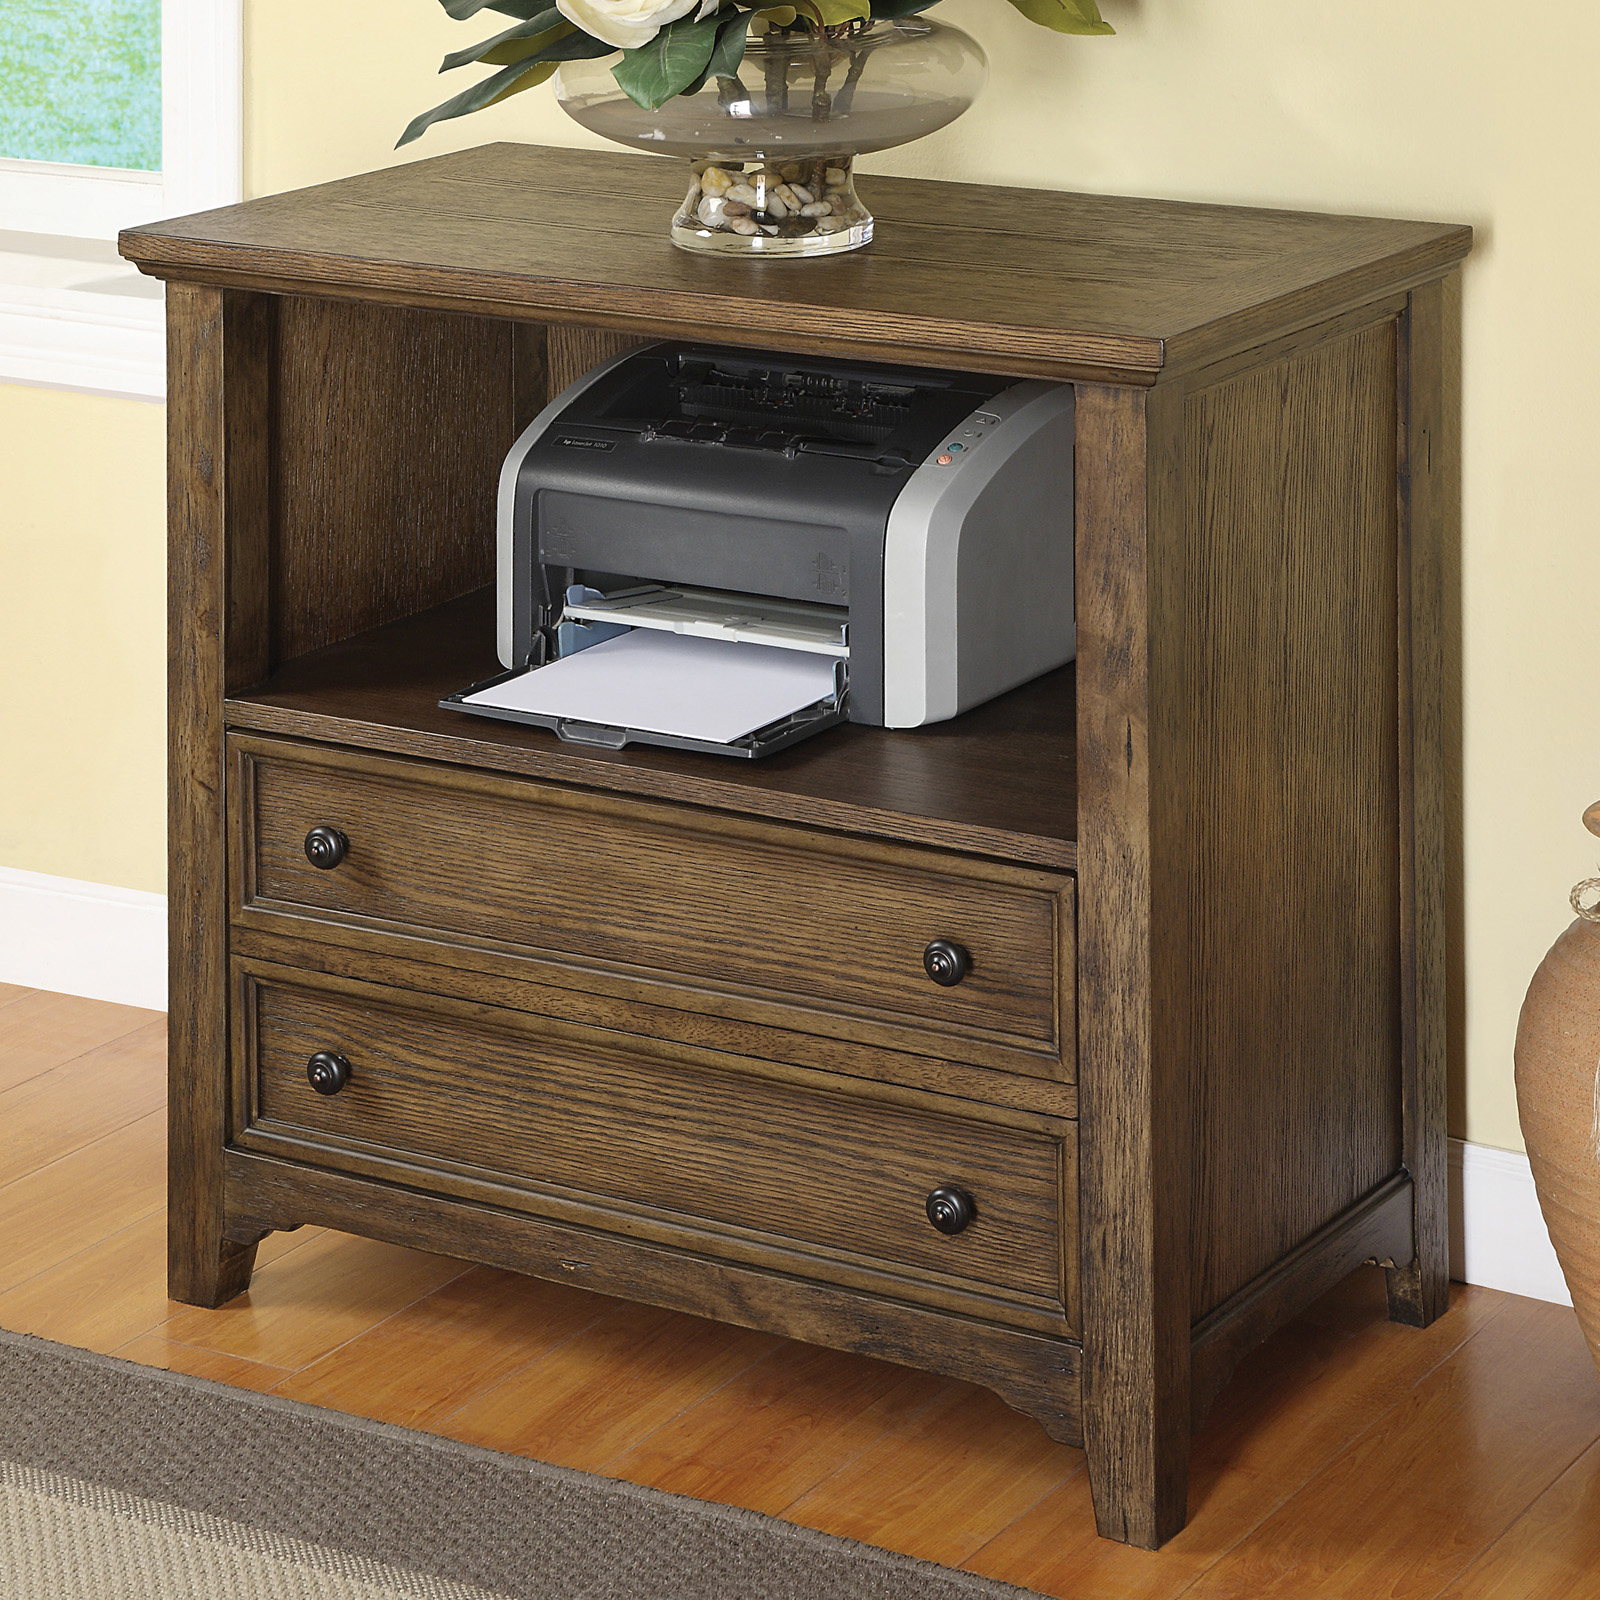 Superieur Wynwood Furniture Newberry Printer Cabinet In Antique Oak